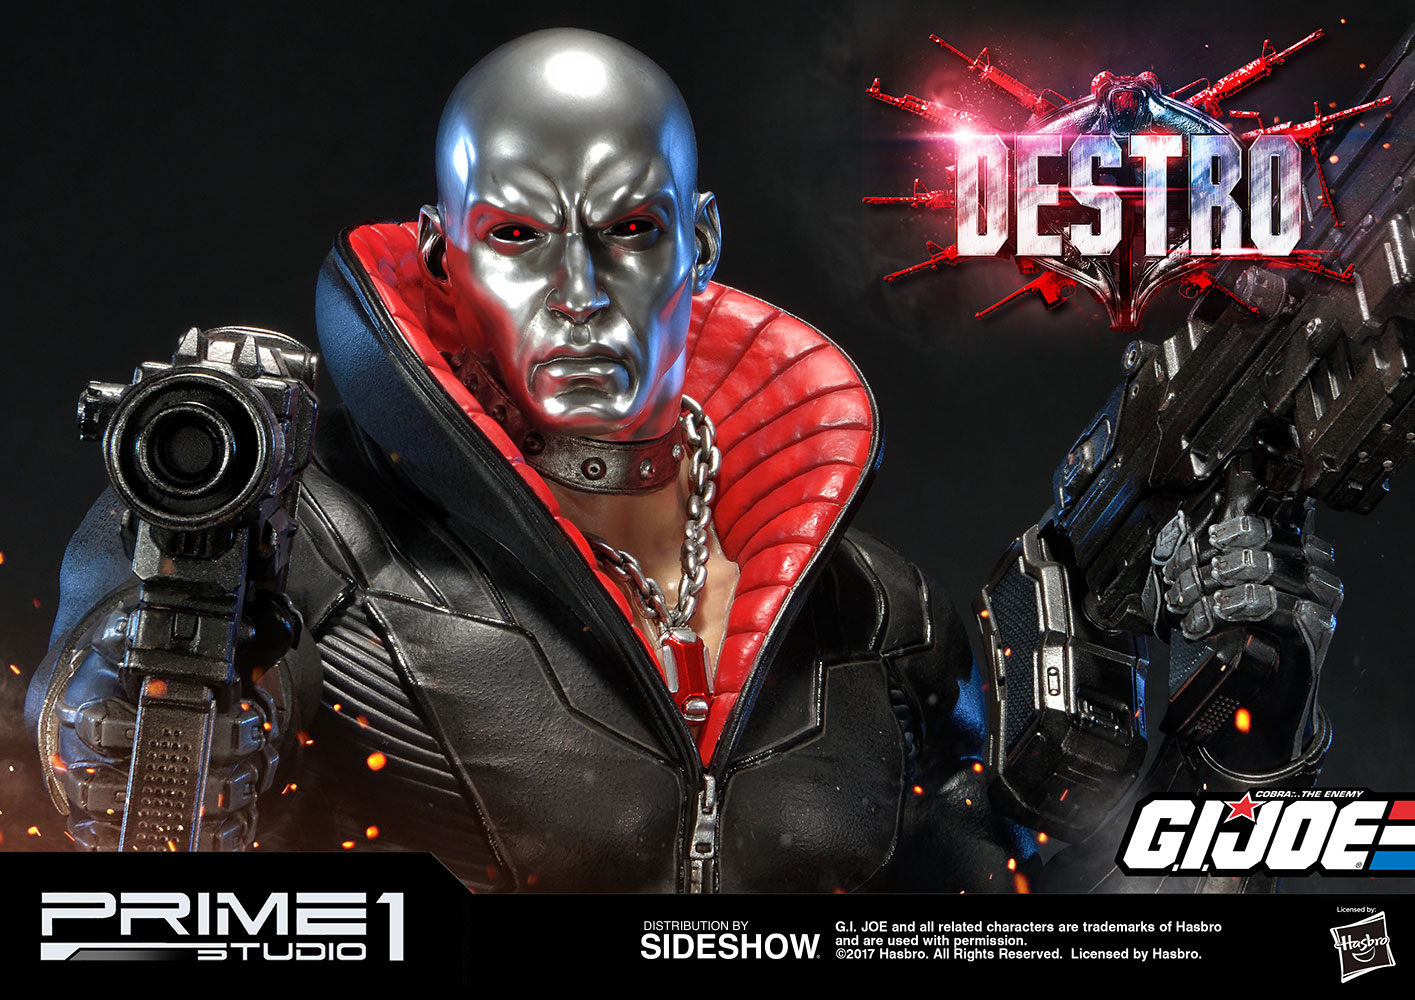 Prime 1 Studio G.I. Joe Destro Statue Pre-Orders